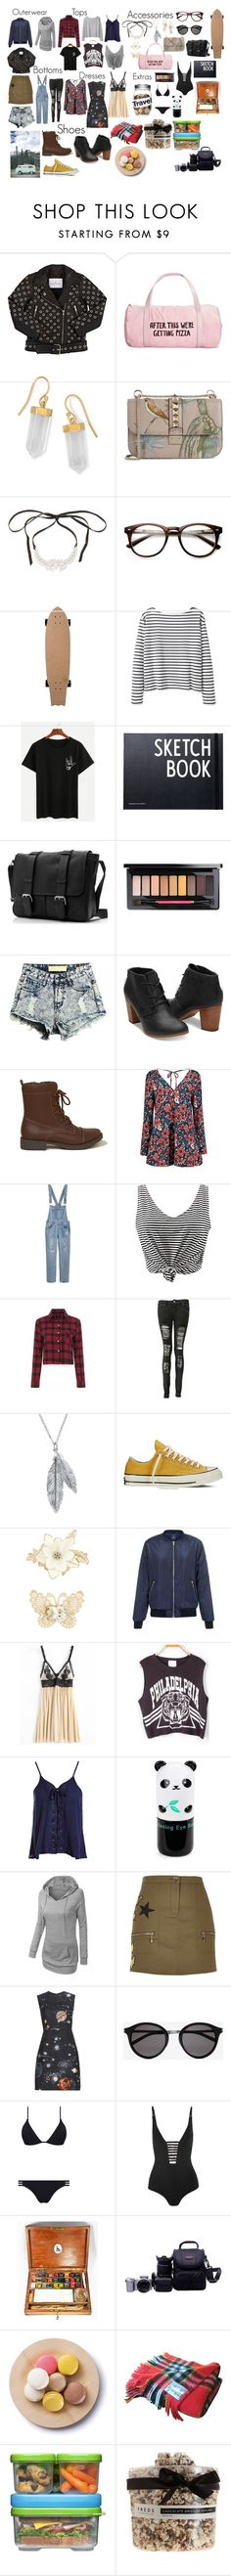 """""""Another Roadtrip"""" by disney-geek-forever on Polyvore featuring Little Remix, ban.do, BillyTheTree, Valentino, Fallon, Wood Wood, Design Letters, MAC Cosmetics, Hollister Co. and Boohoo"""